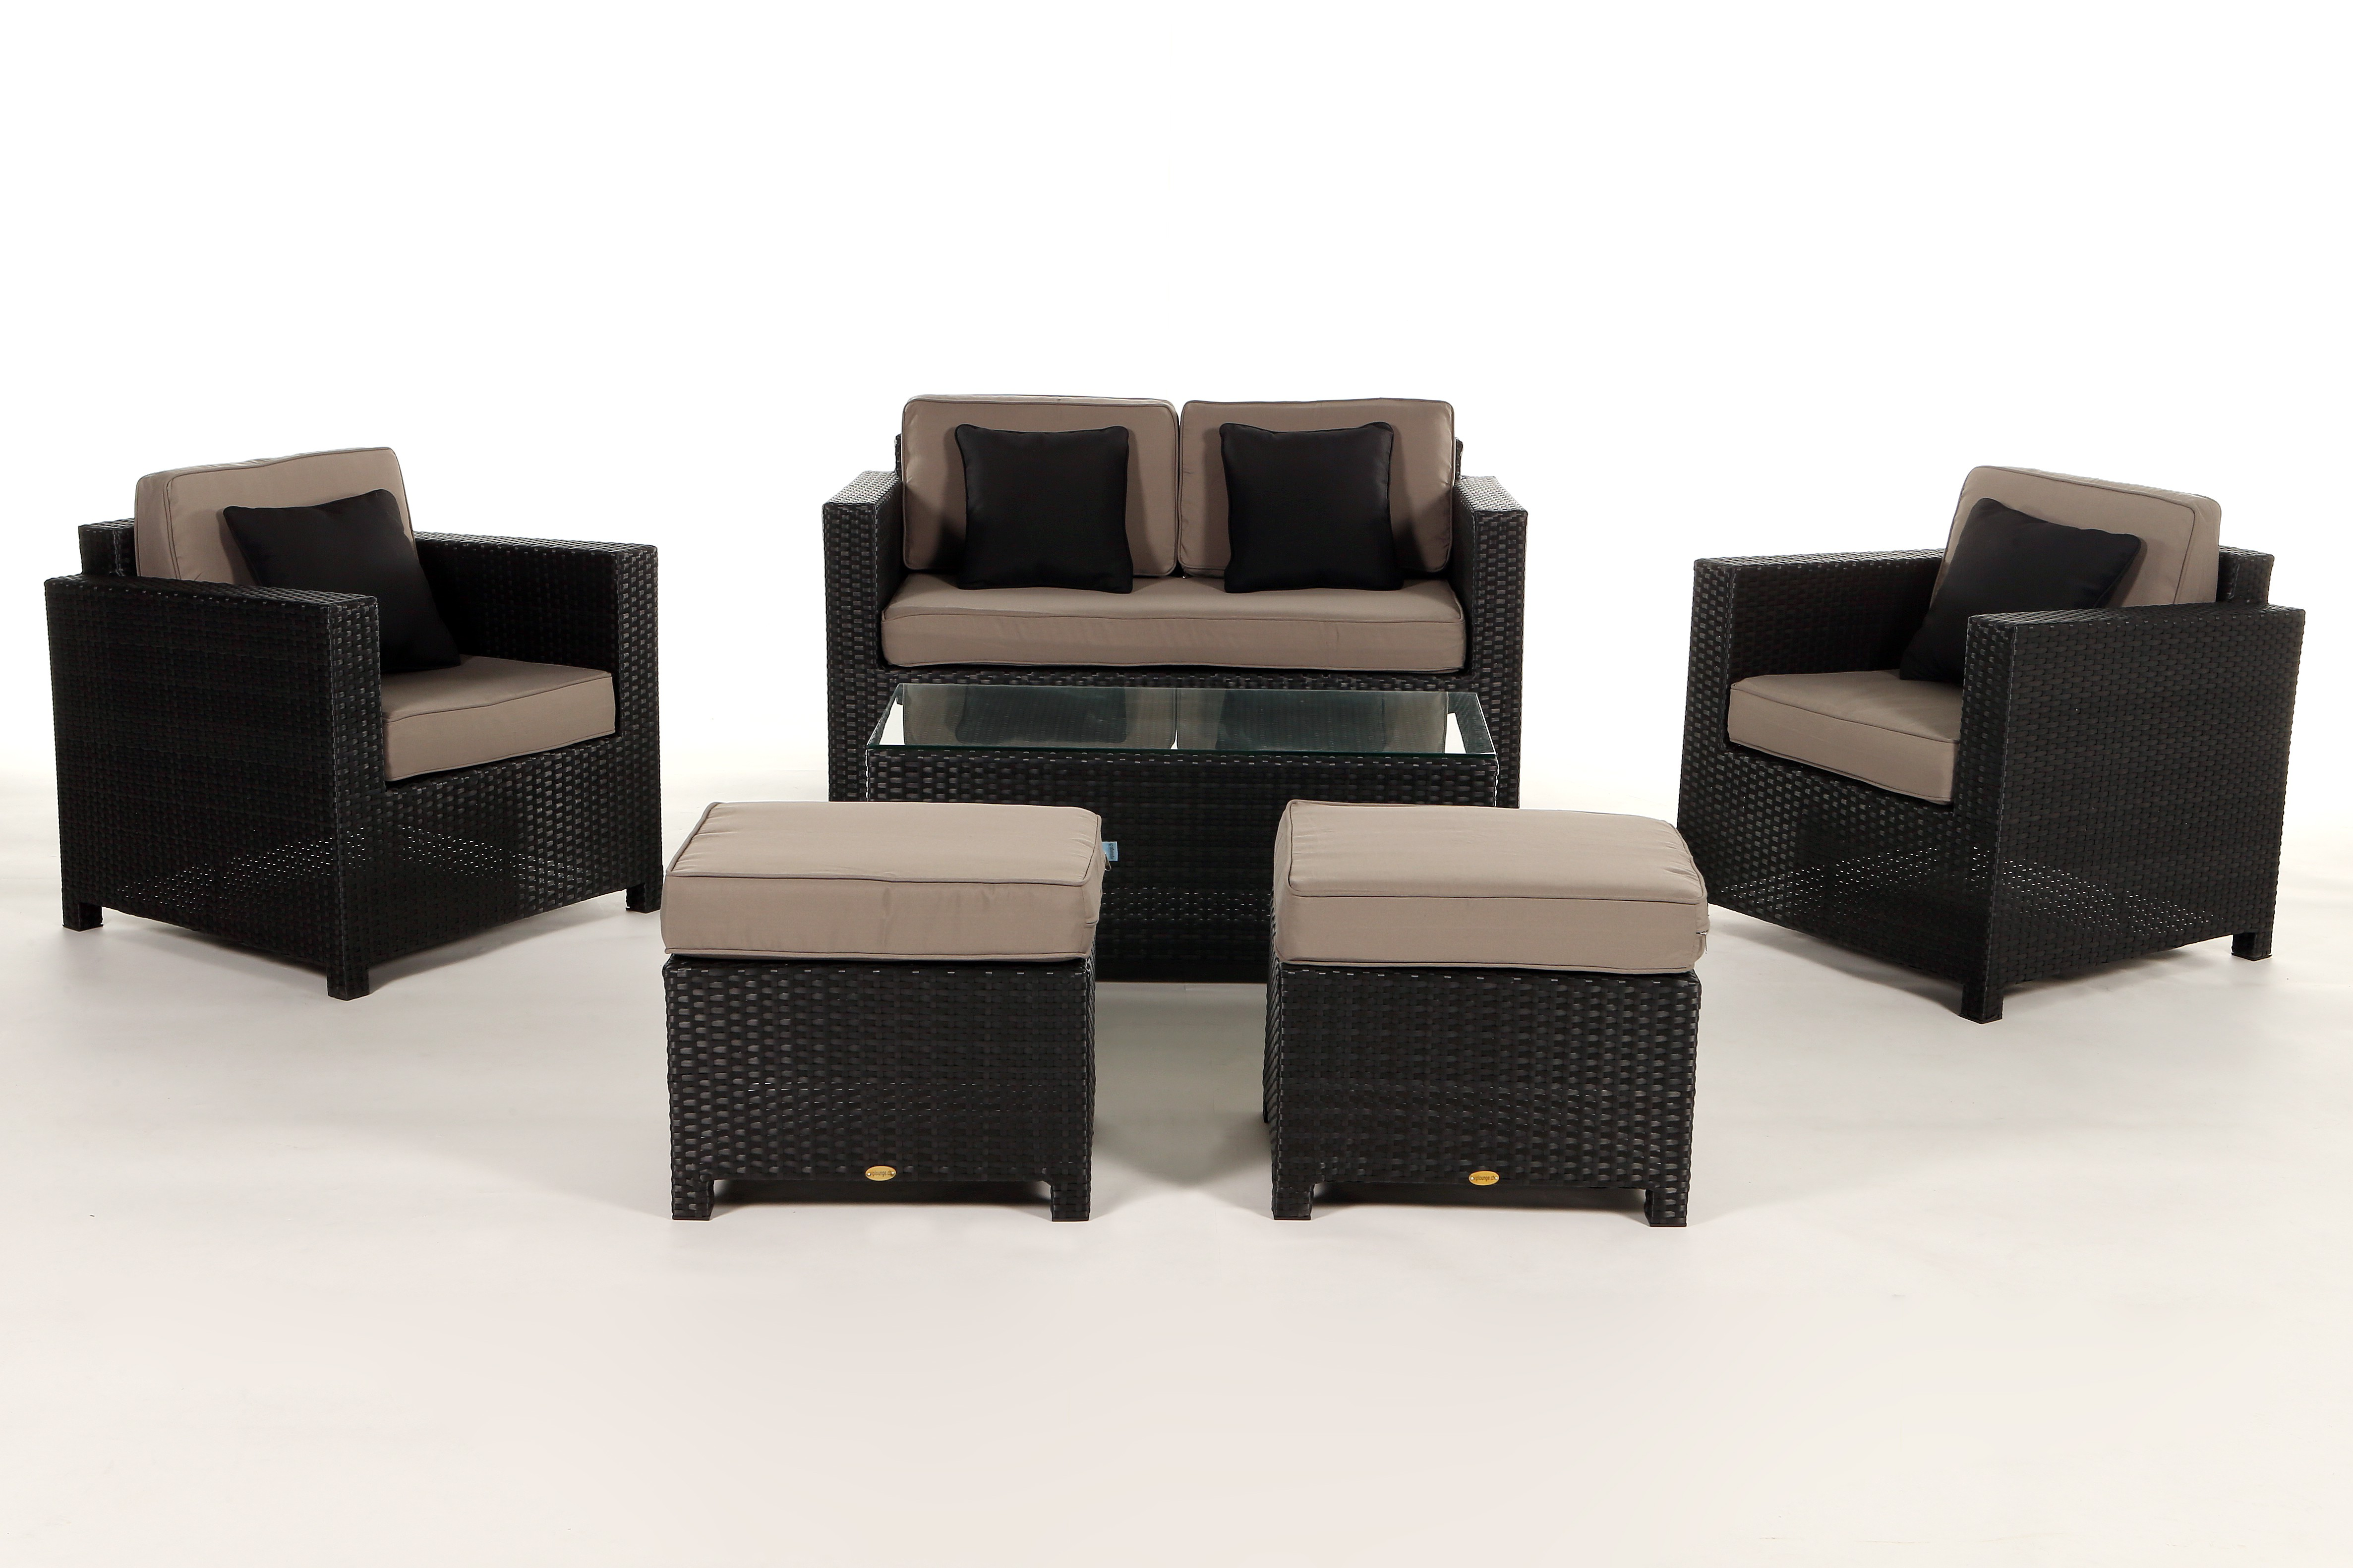 Rattan lounge schwarz  Black Luxury Deluxe Lounge - rattan garden furniture for your ...